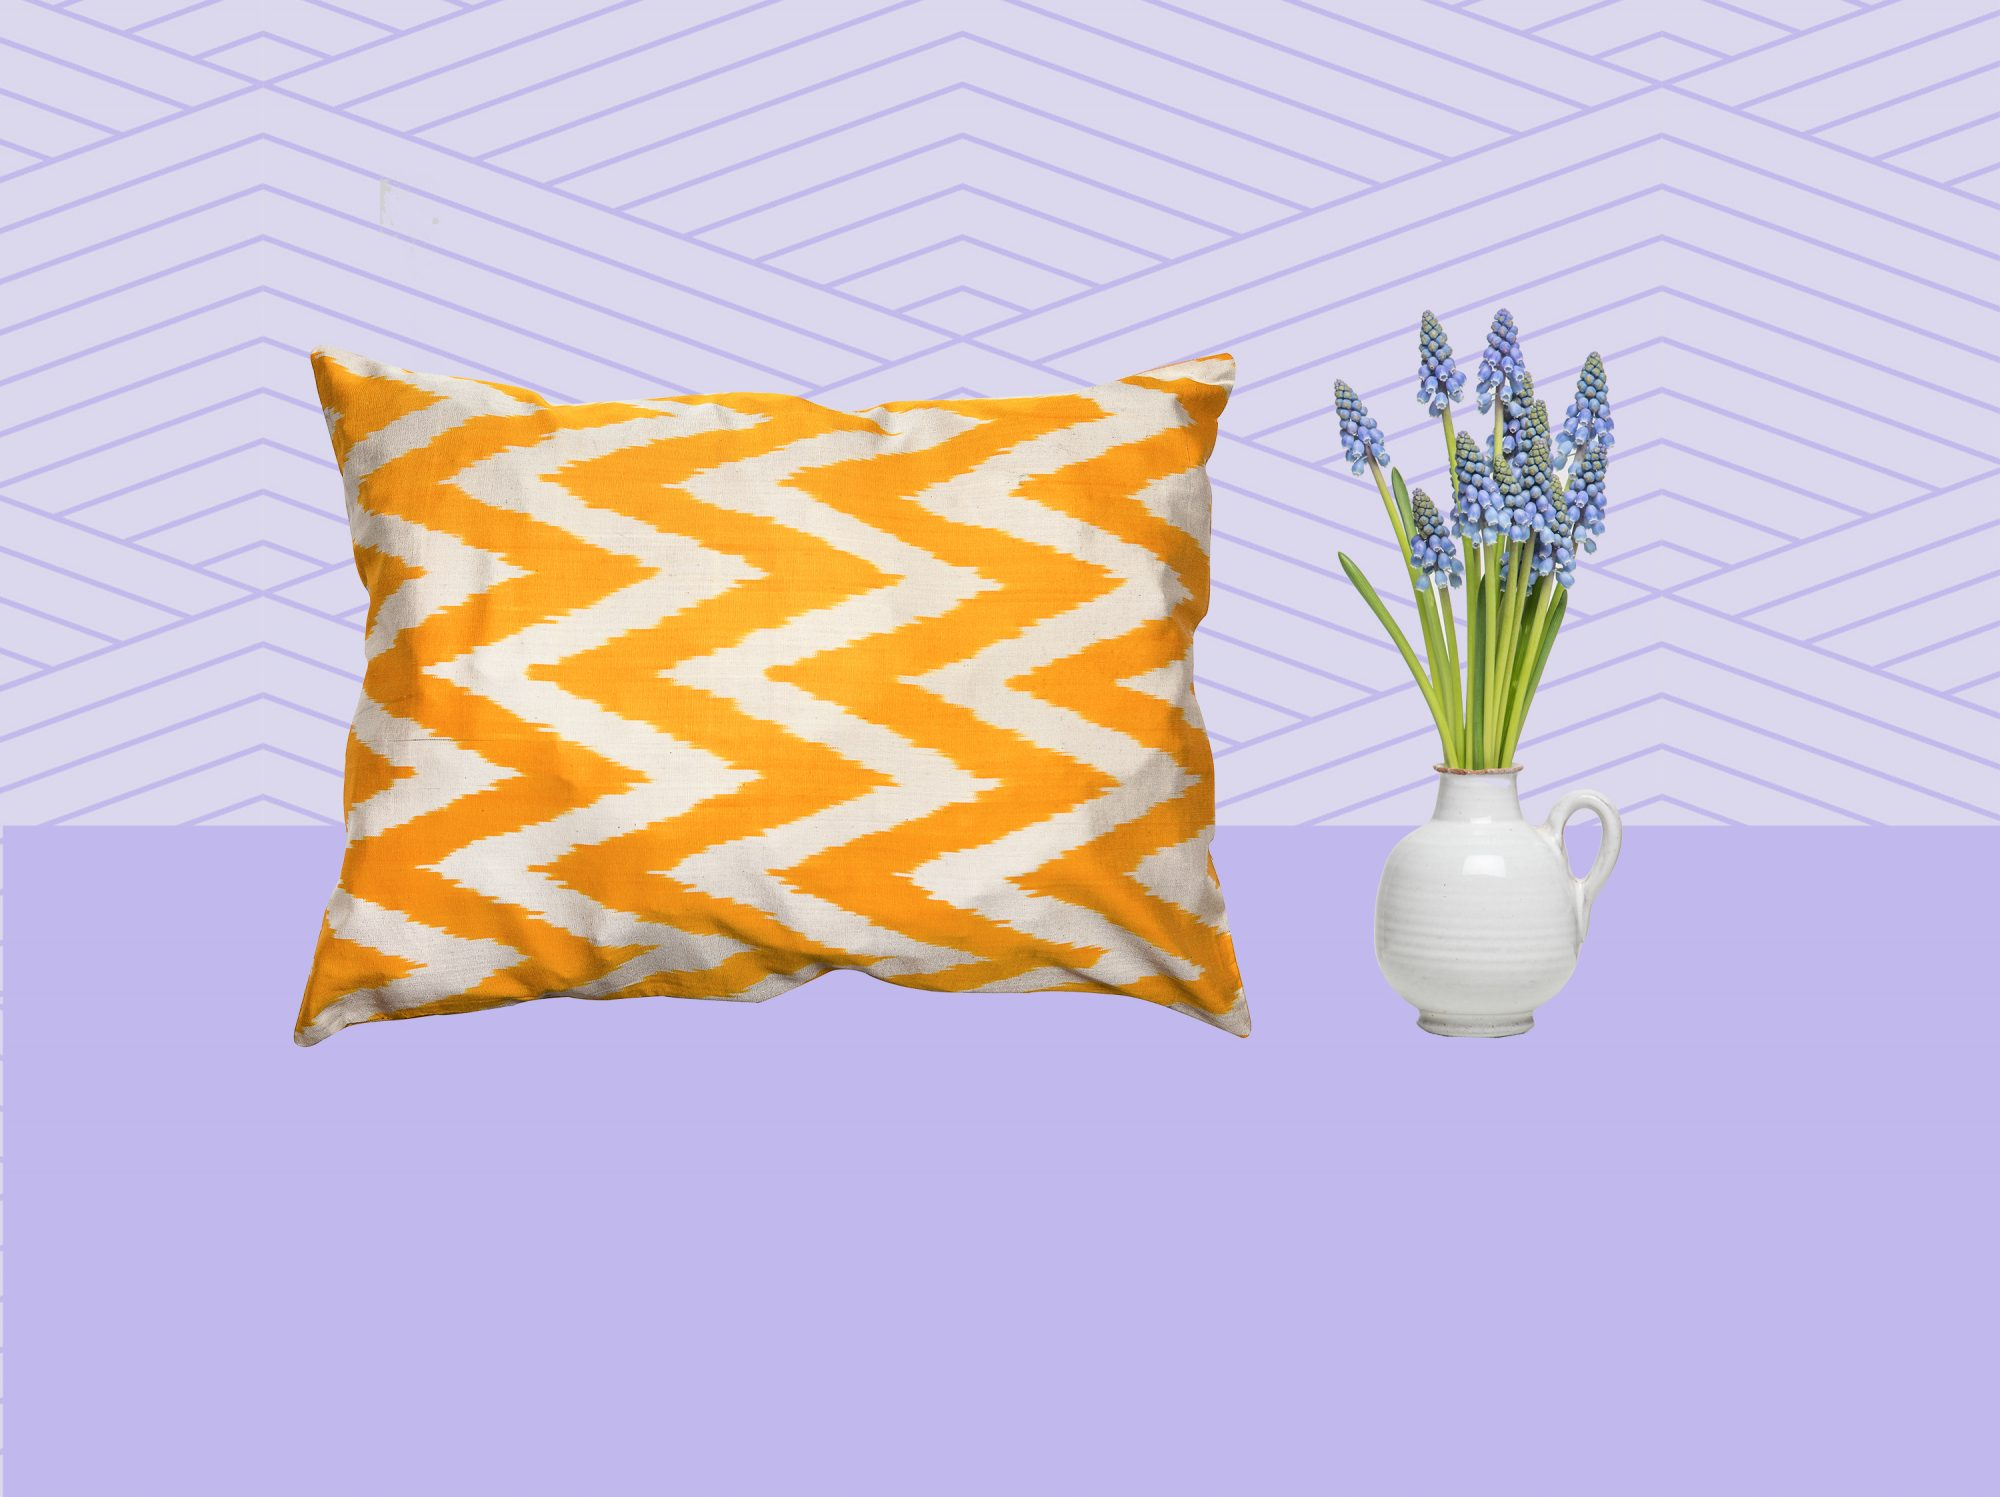 Styling Tricks for a Cleaner Looking Home, pillow and fresh flowers